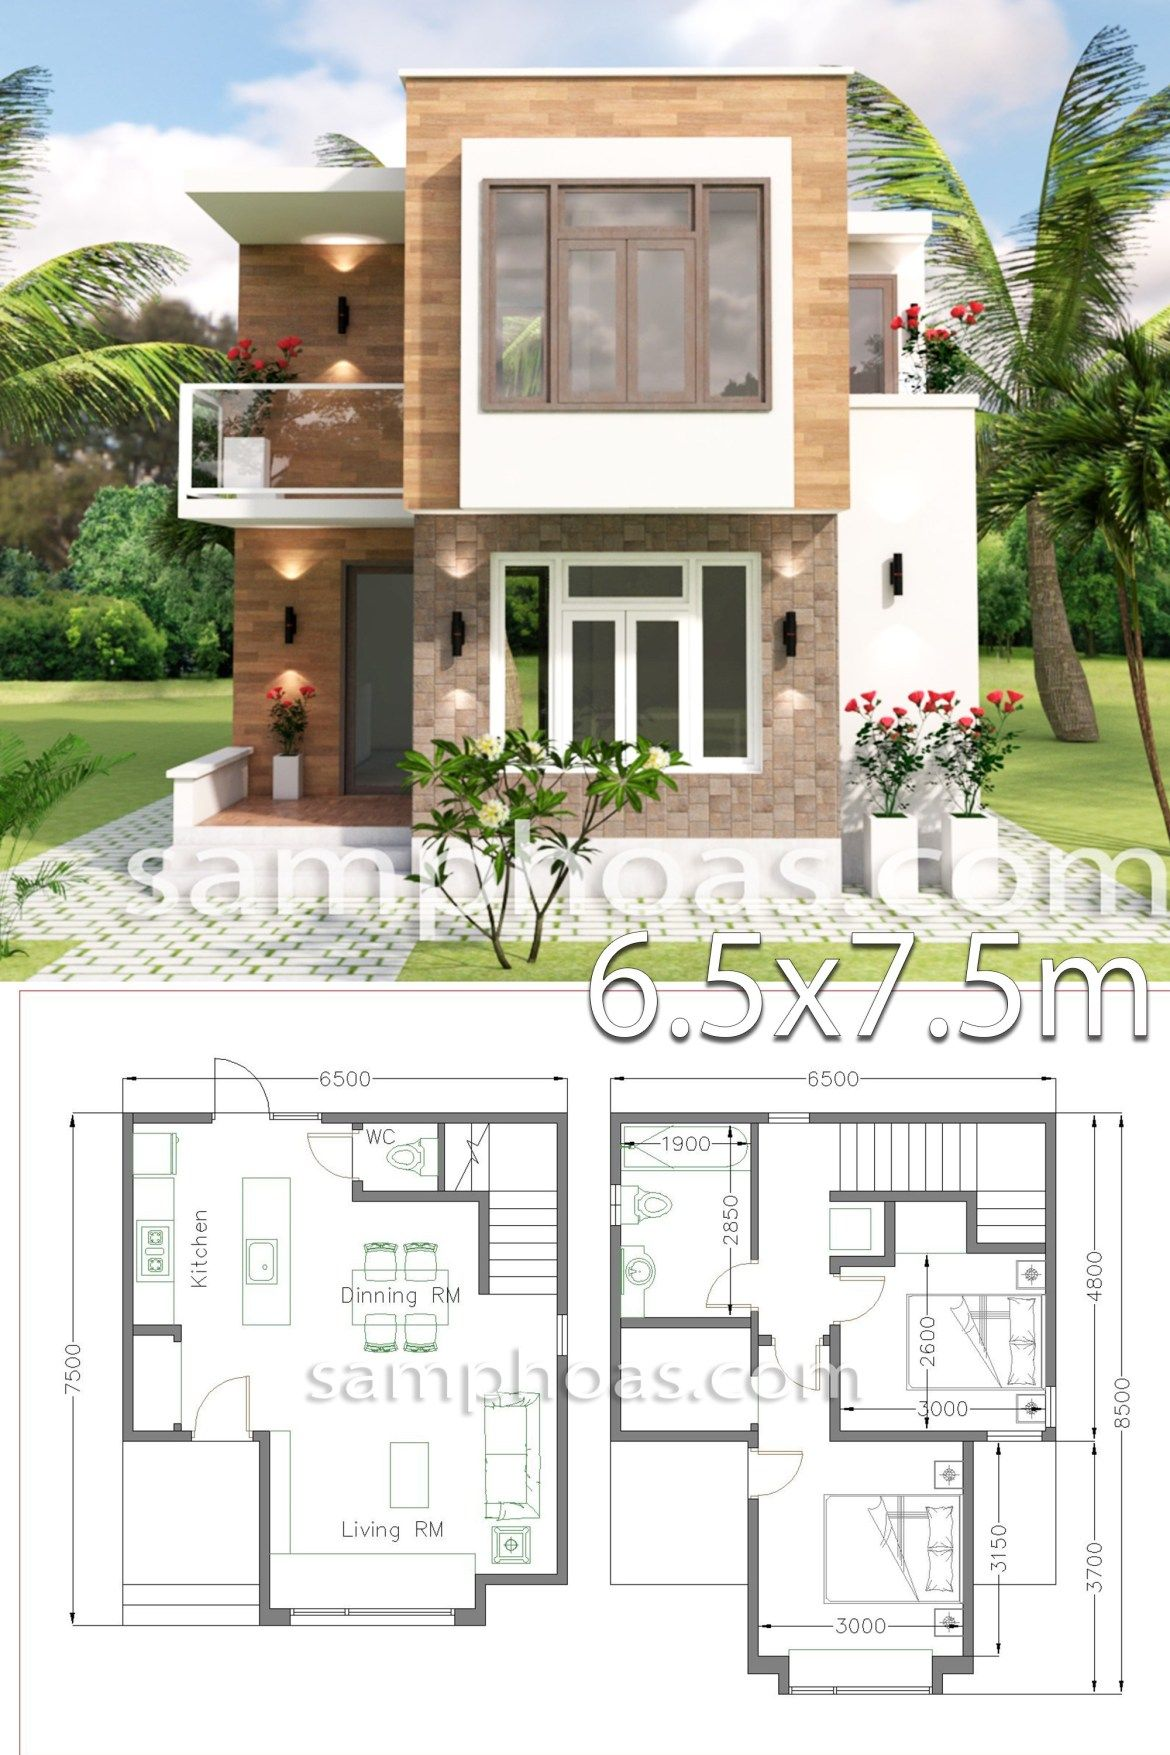 Small House Design with Full Plan 6.5×7.5m 2 Bedrooms – SamPhoas Plan